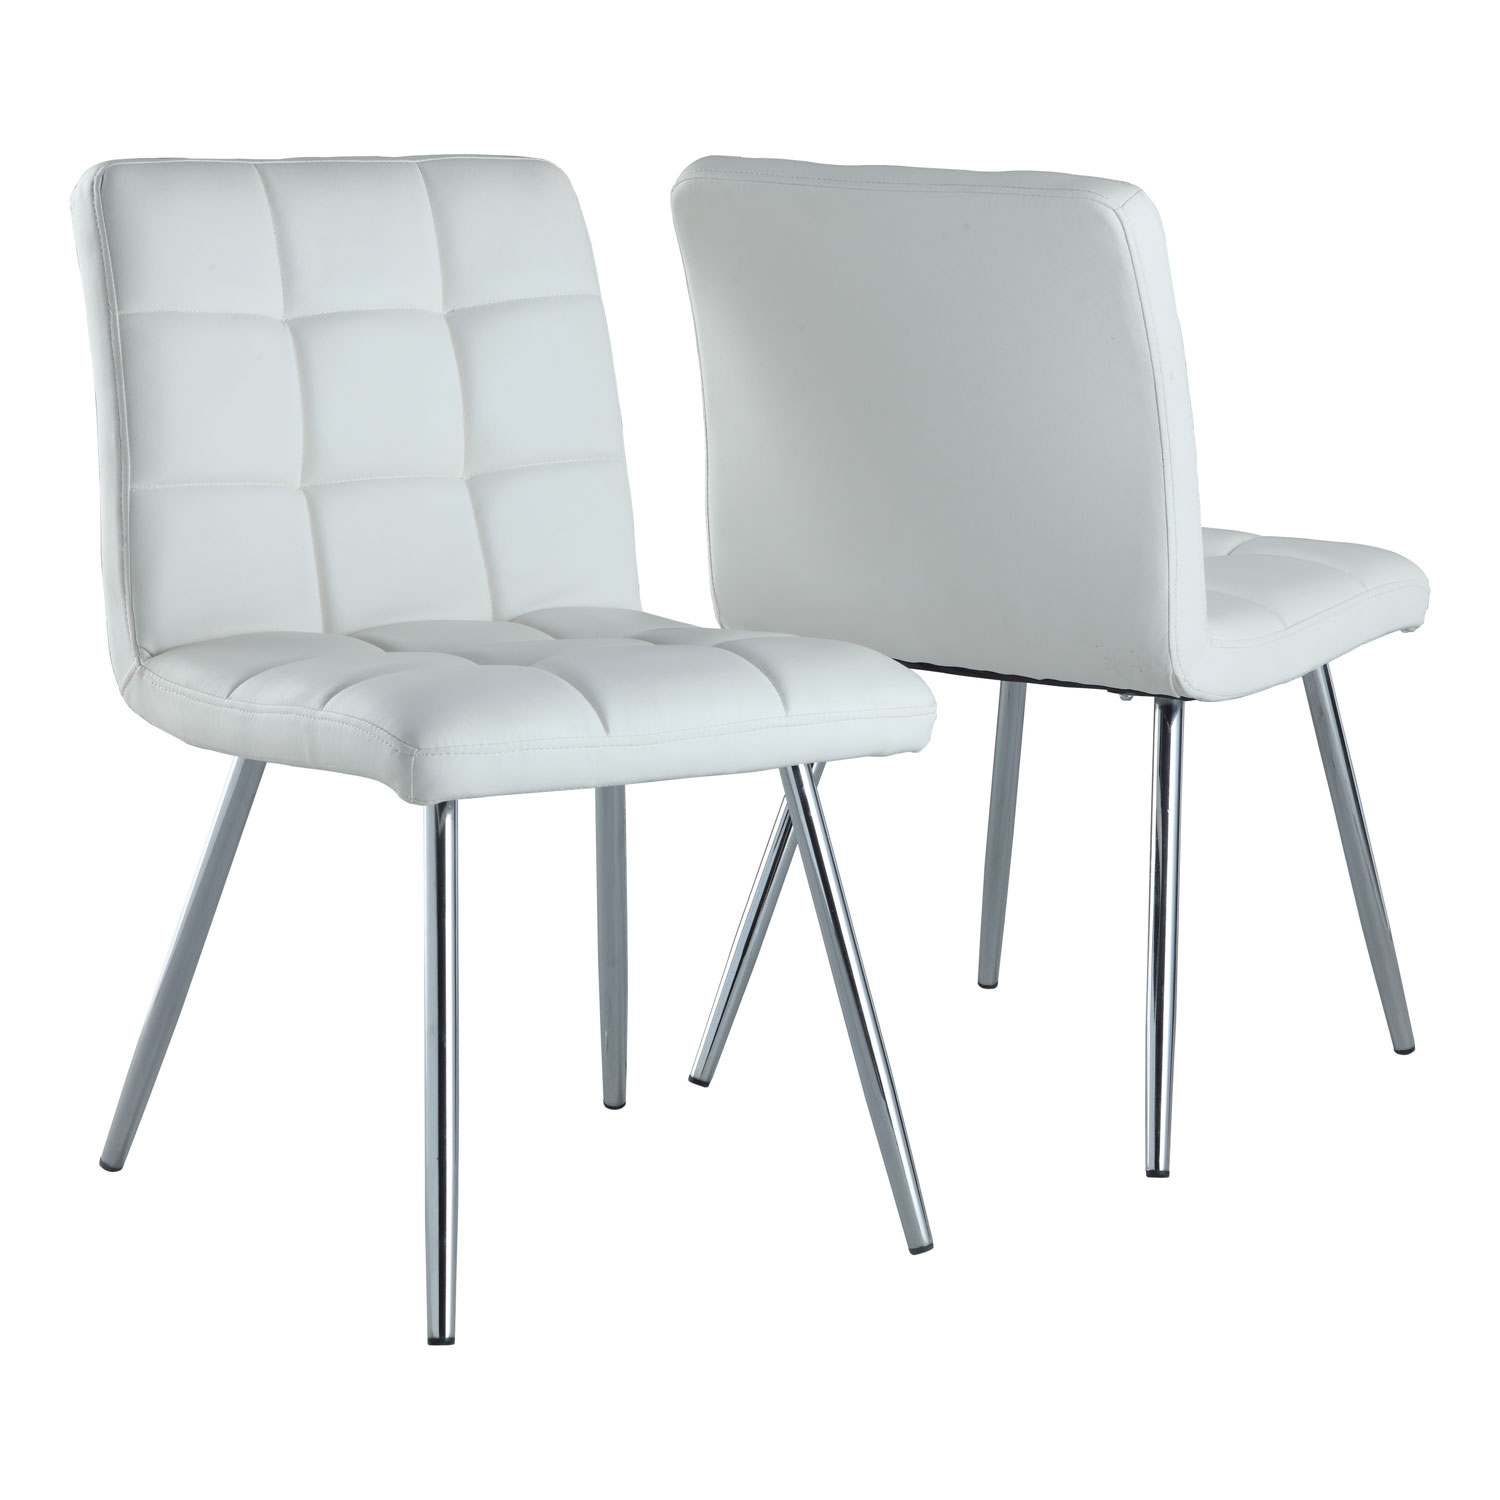 Modern DiningChair Set of 2 White Dining Chairs Best